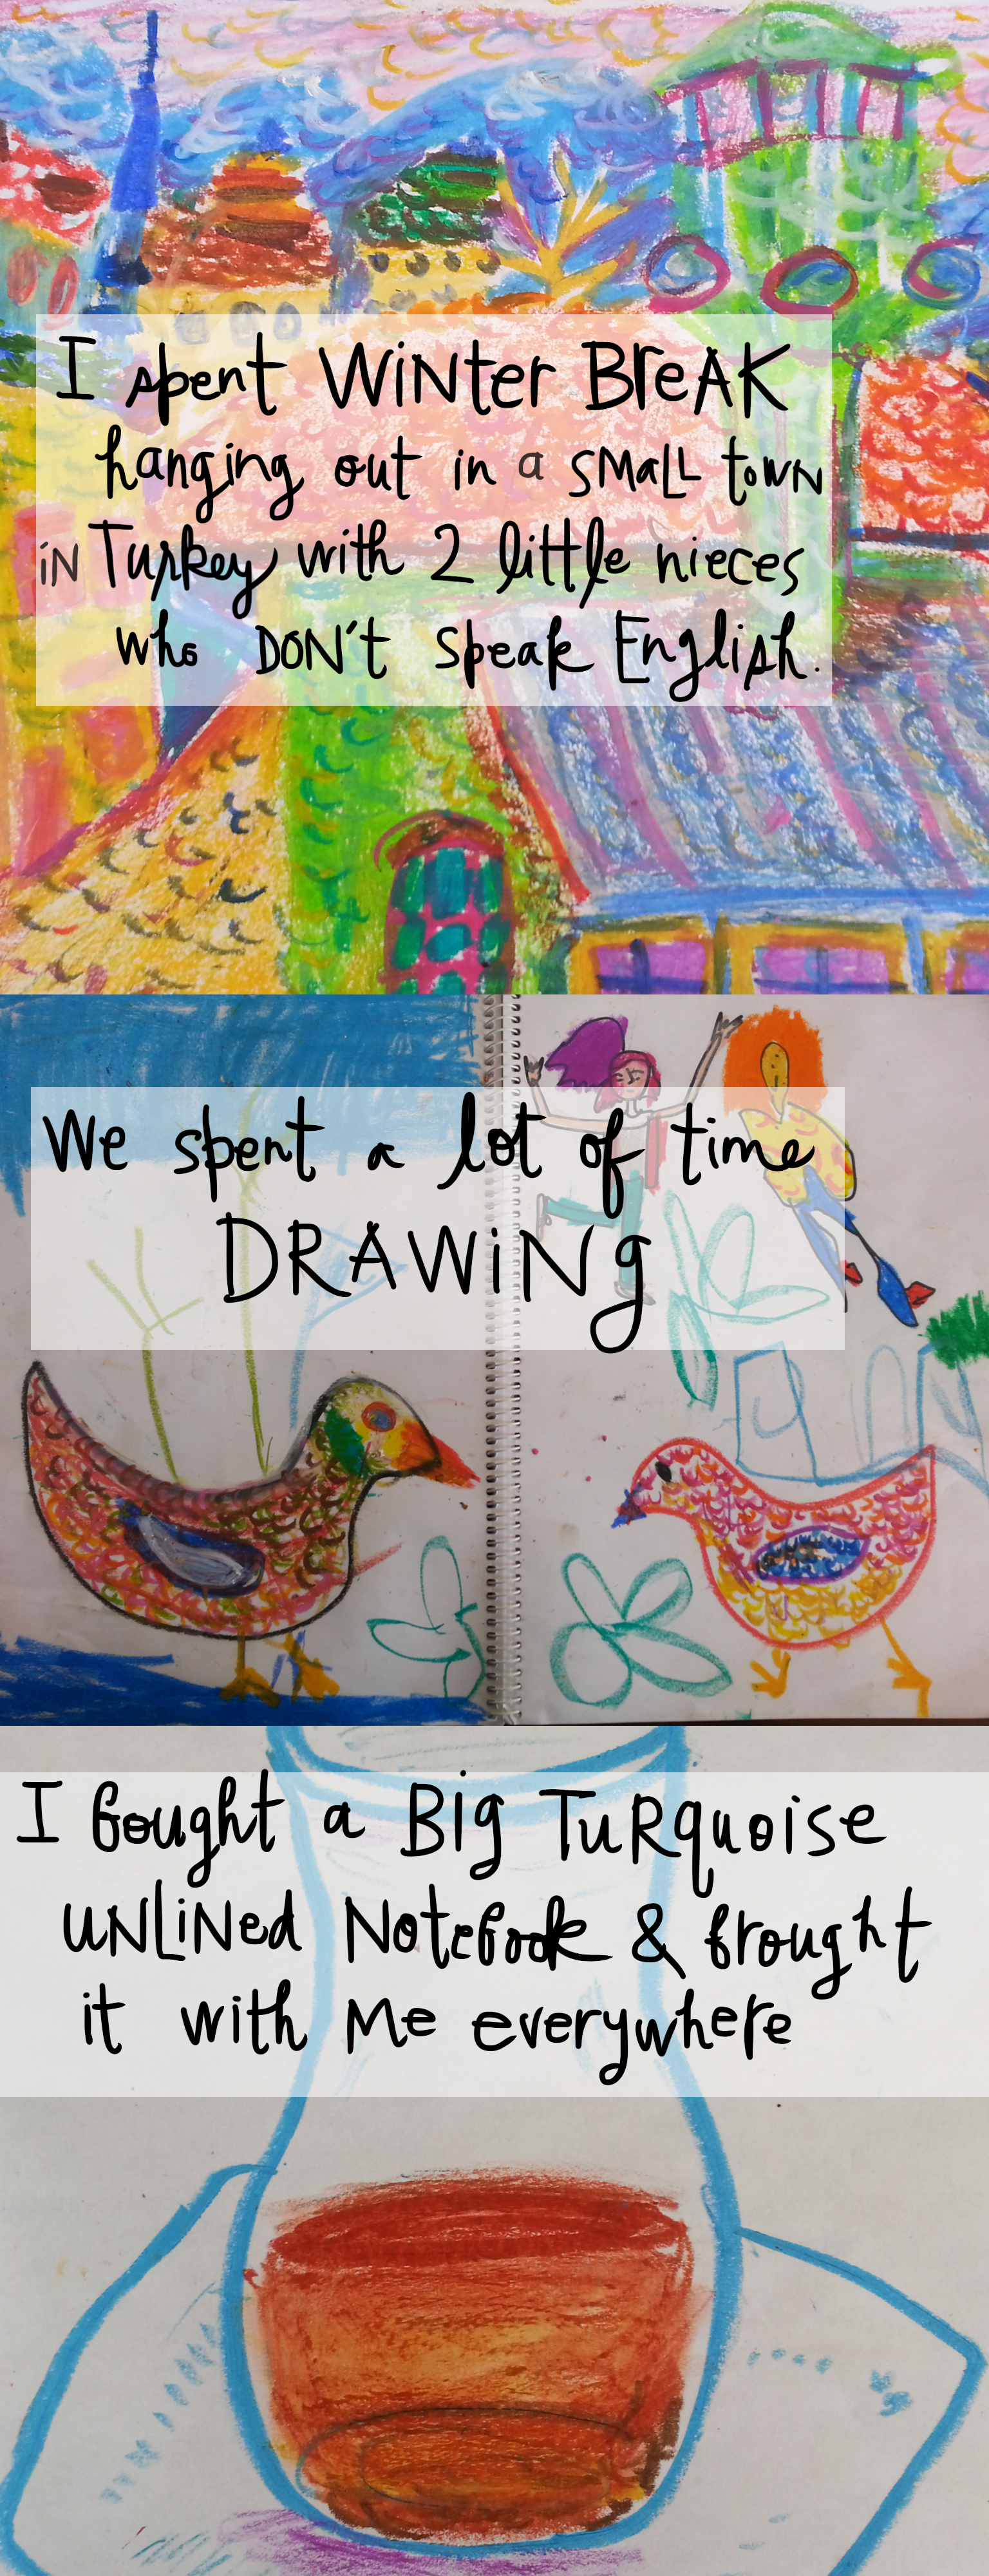 Drawing with kids 1 - by Margaret Hagan